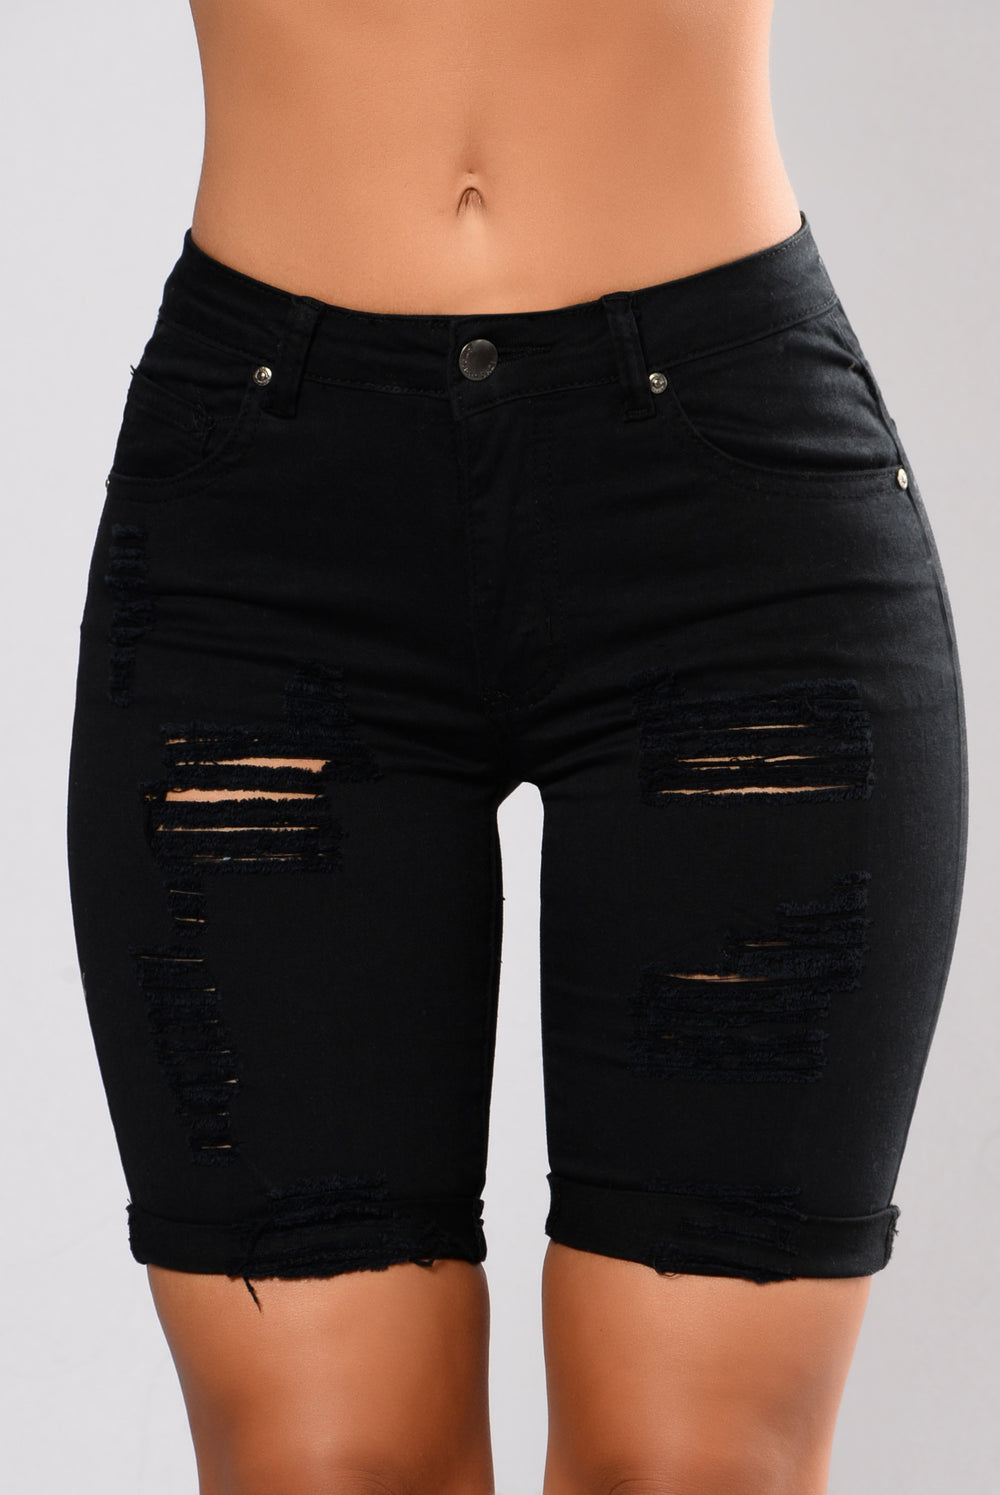 Black Distressed Shorts Png